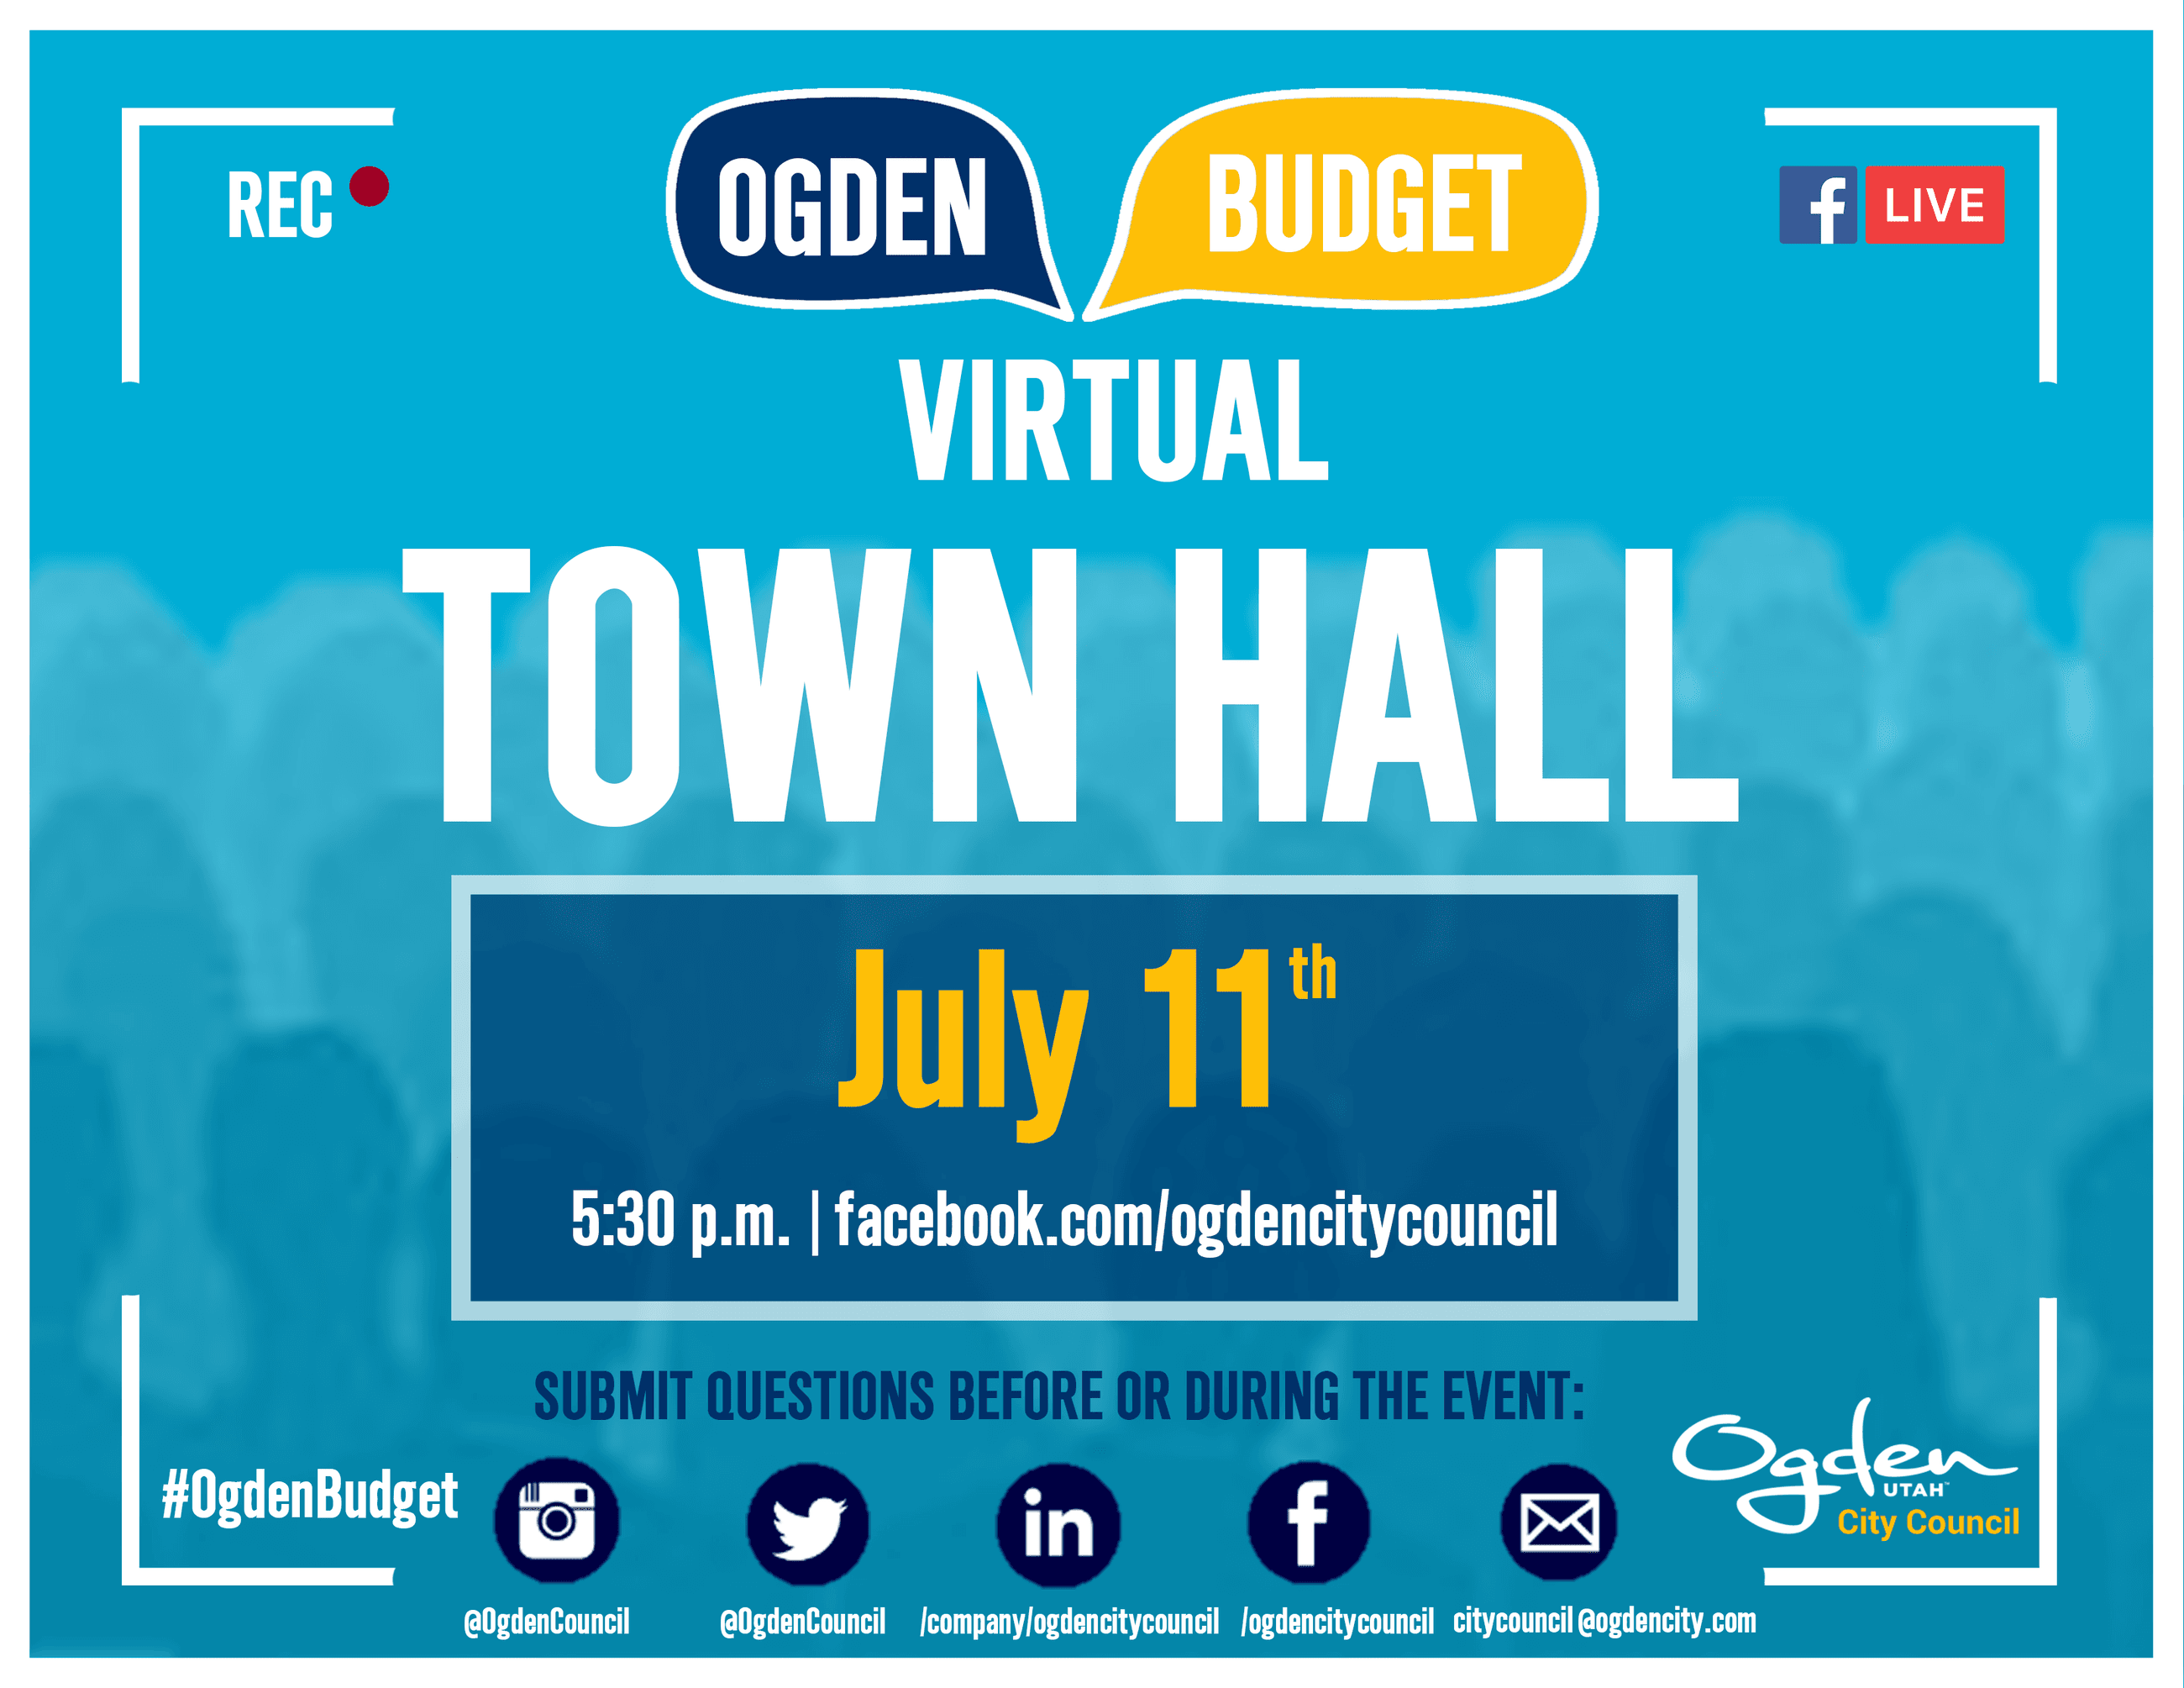 Virtual Town Hall on Budget